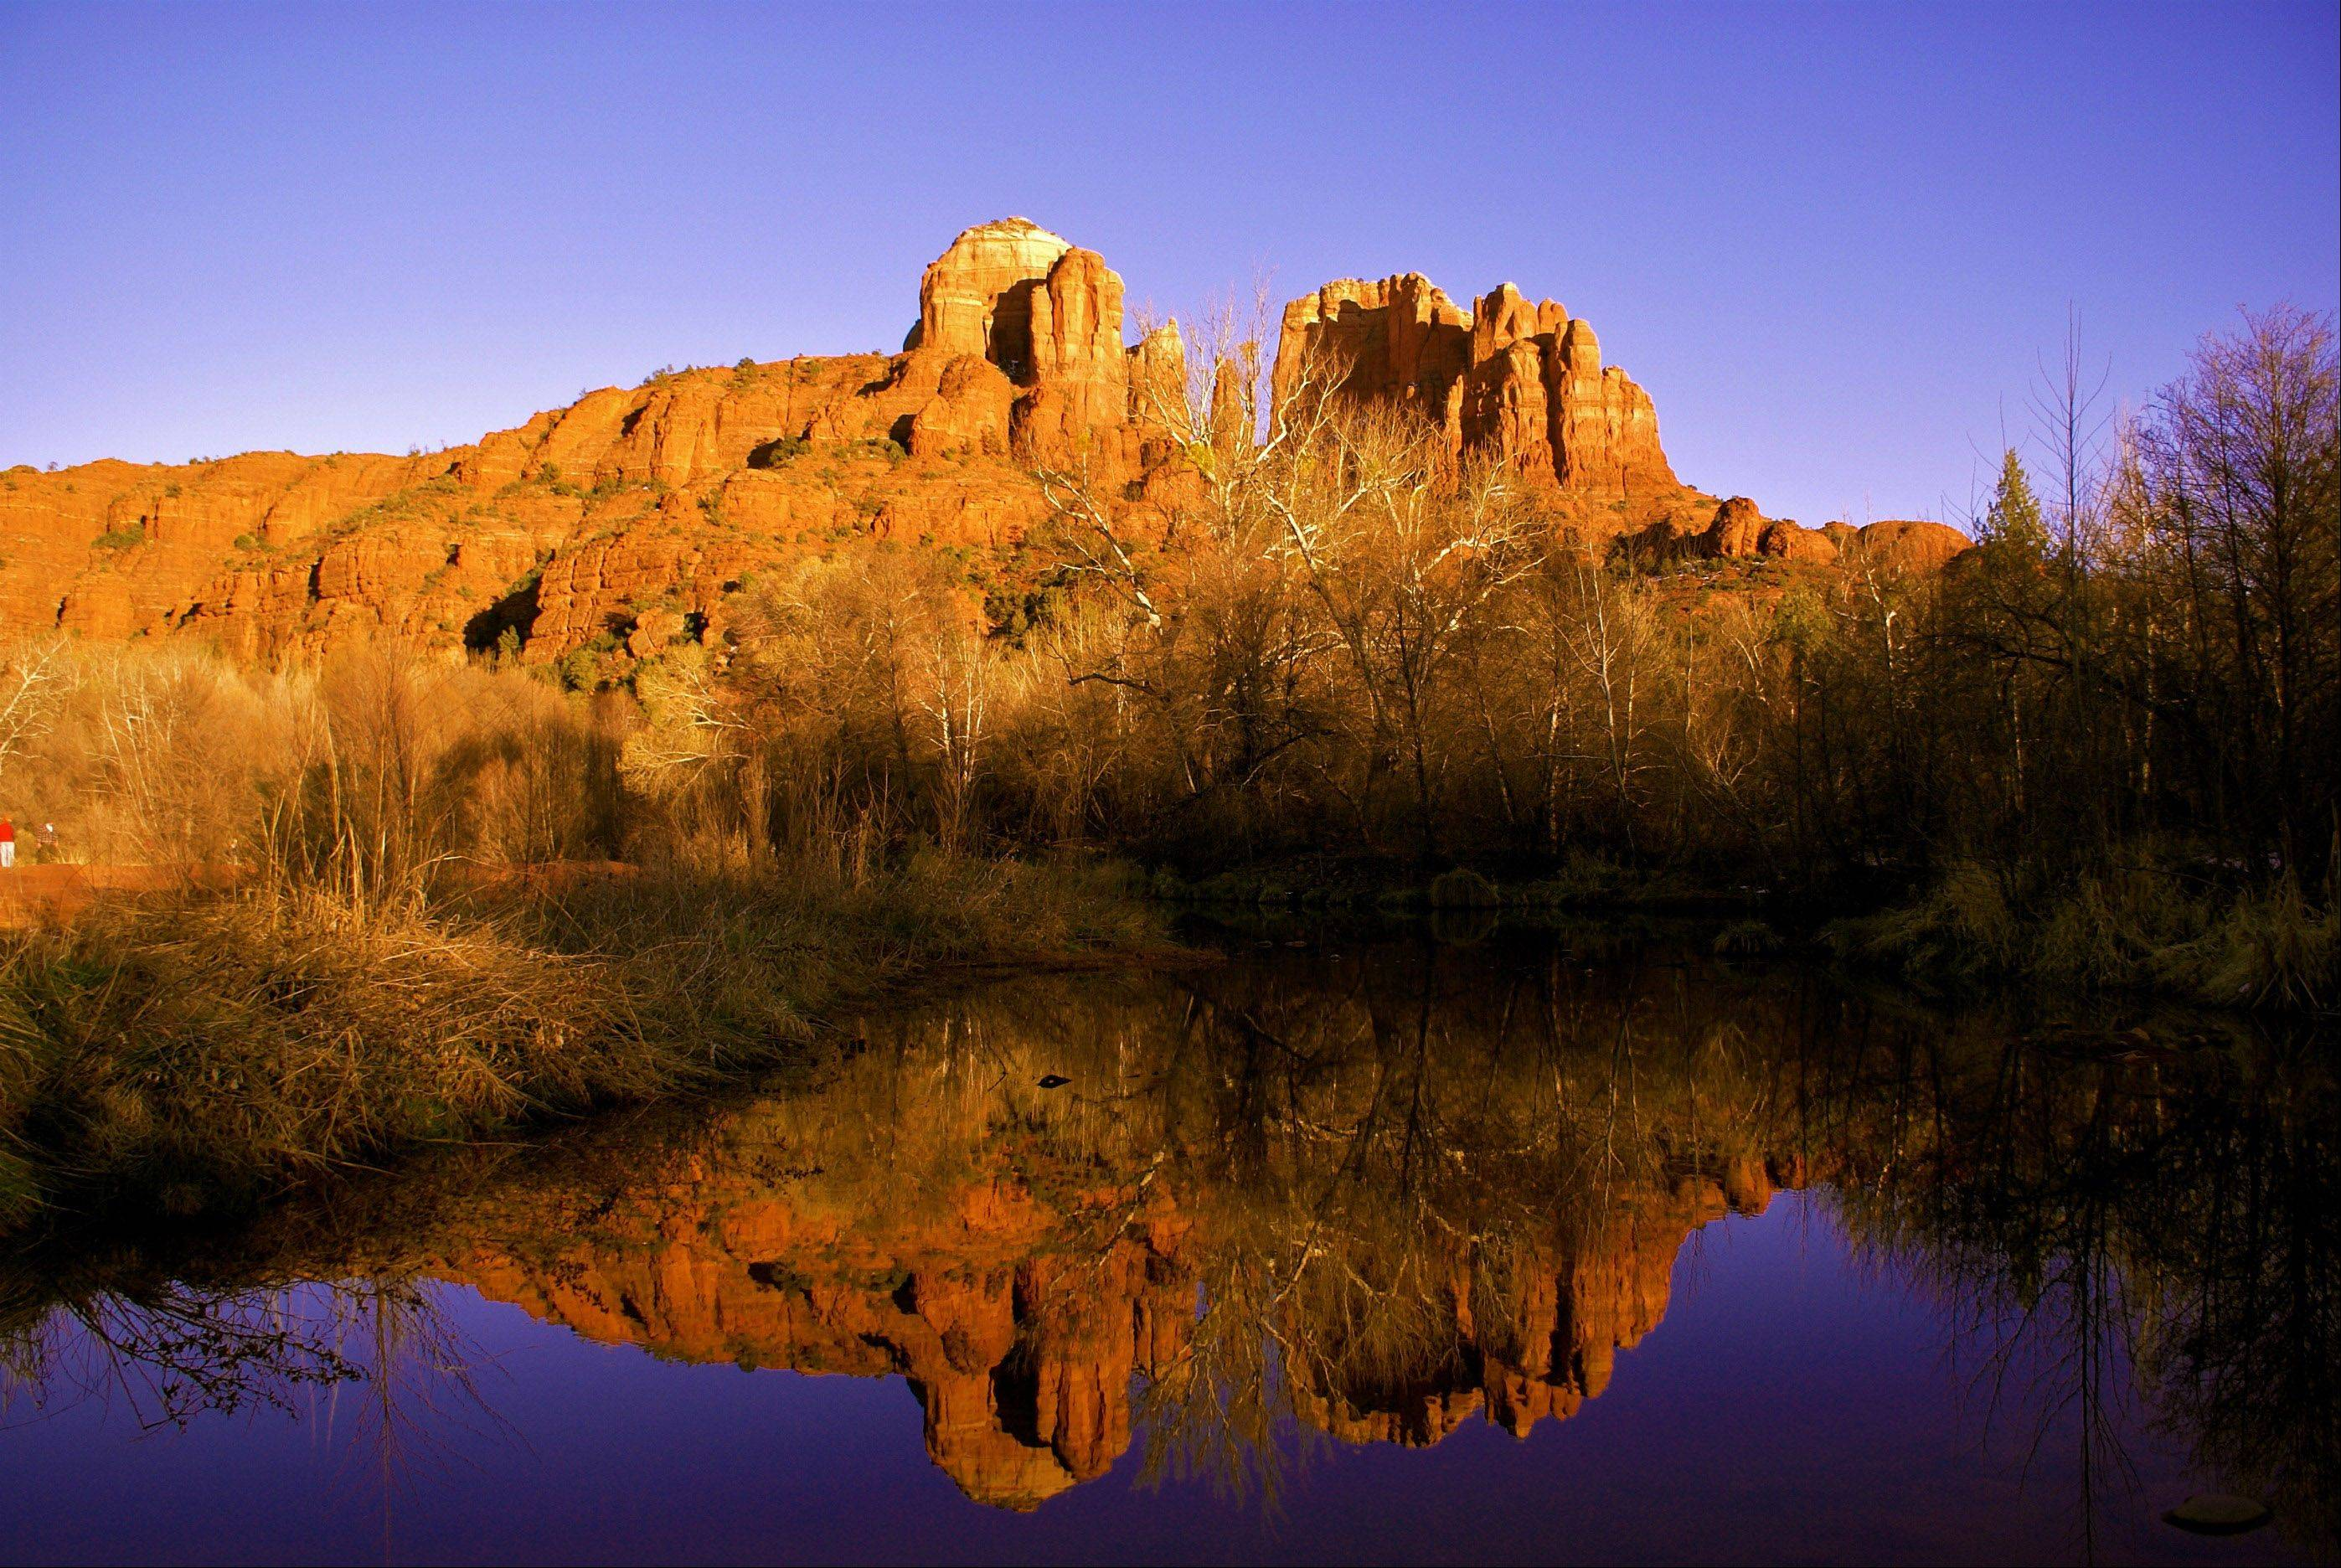 A reflection in a lake of Cathedral Rock in Sedona, AZ last March.